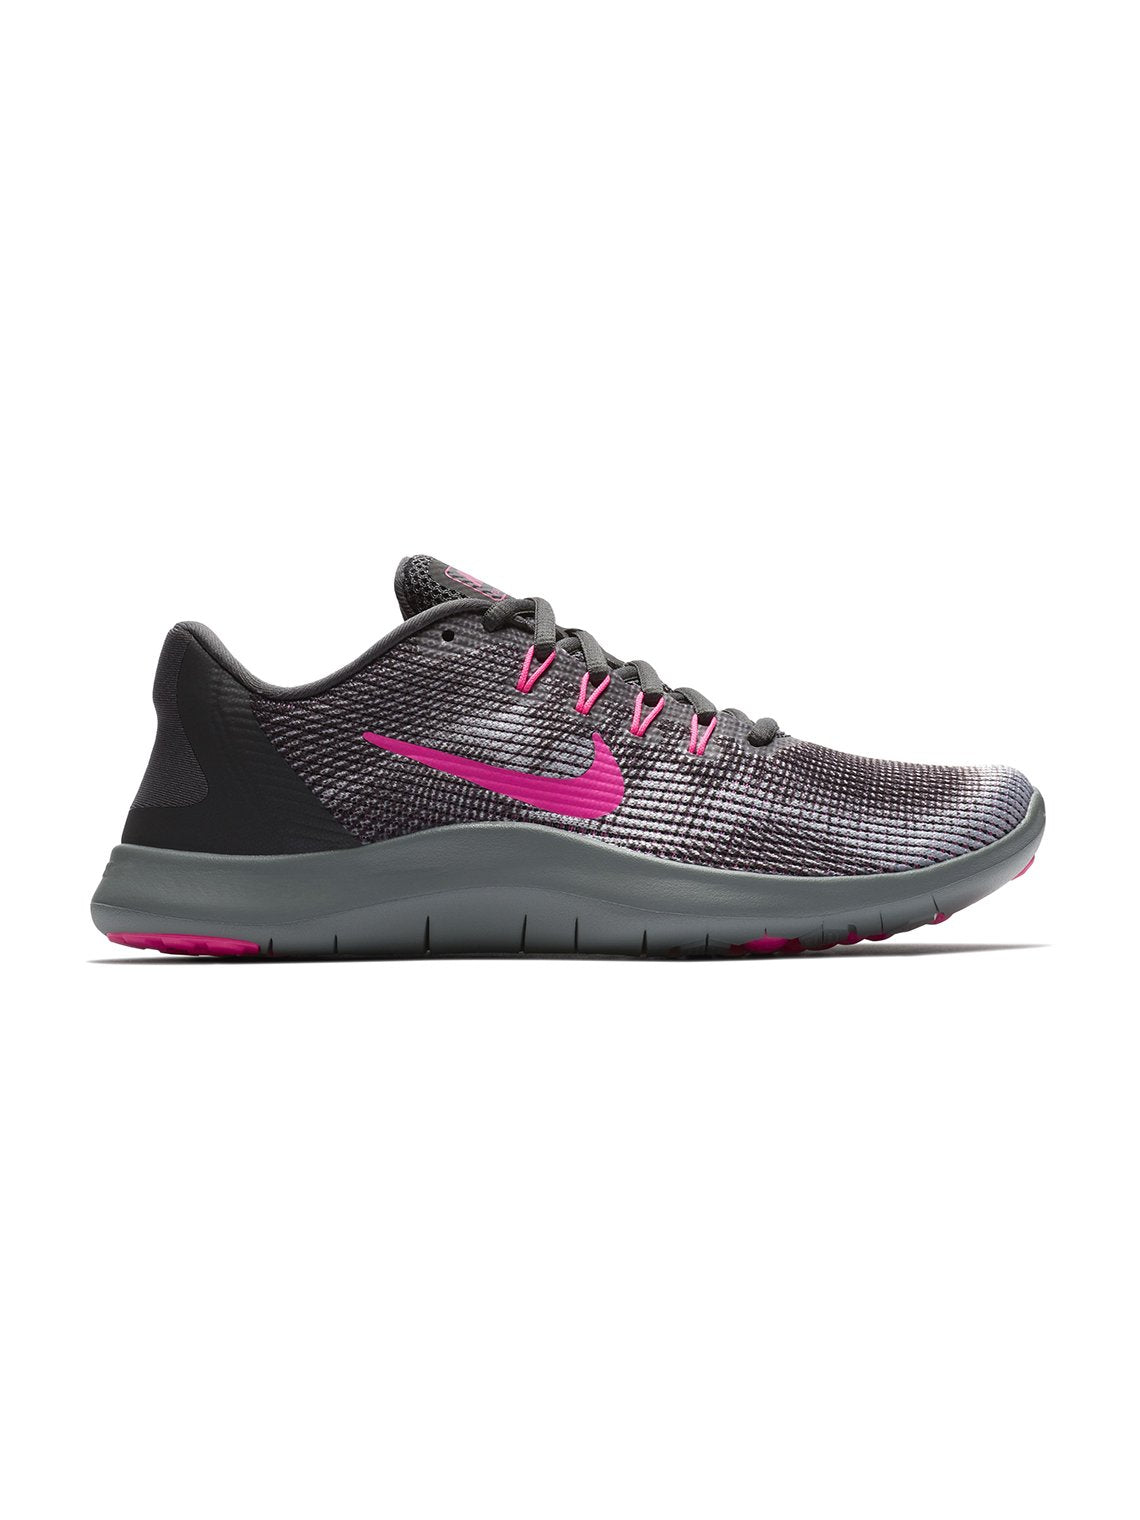 separation shoes fa1a4 3208b Flex 2018 Running Shoes, Anthracite Hyper Pink Wolf Grey. Nike Flex 2018  Running Shoes ...